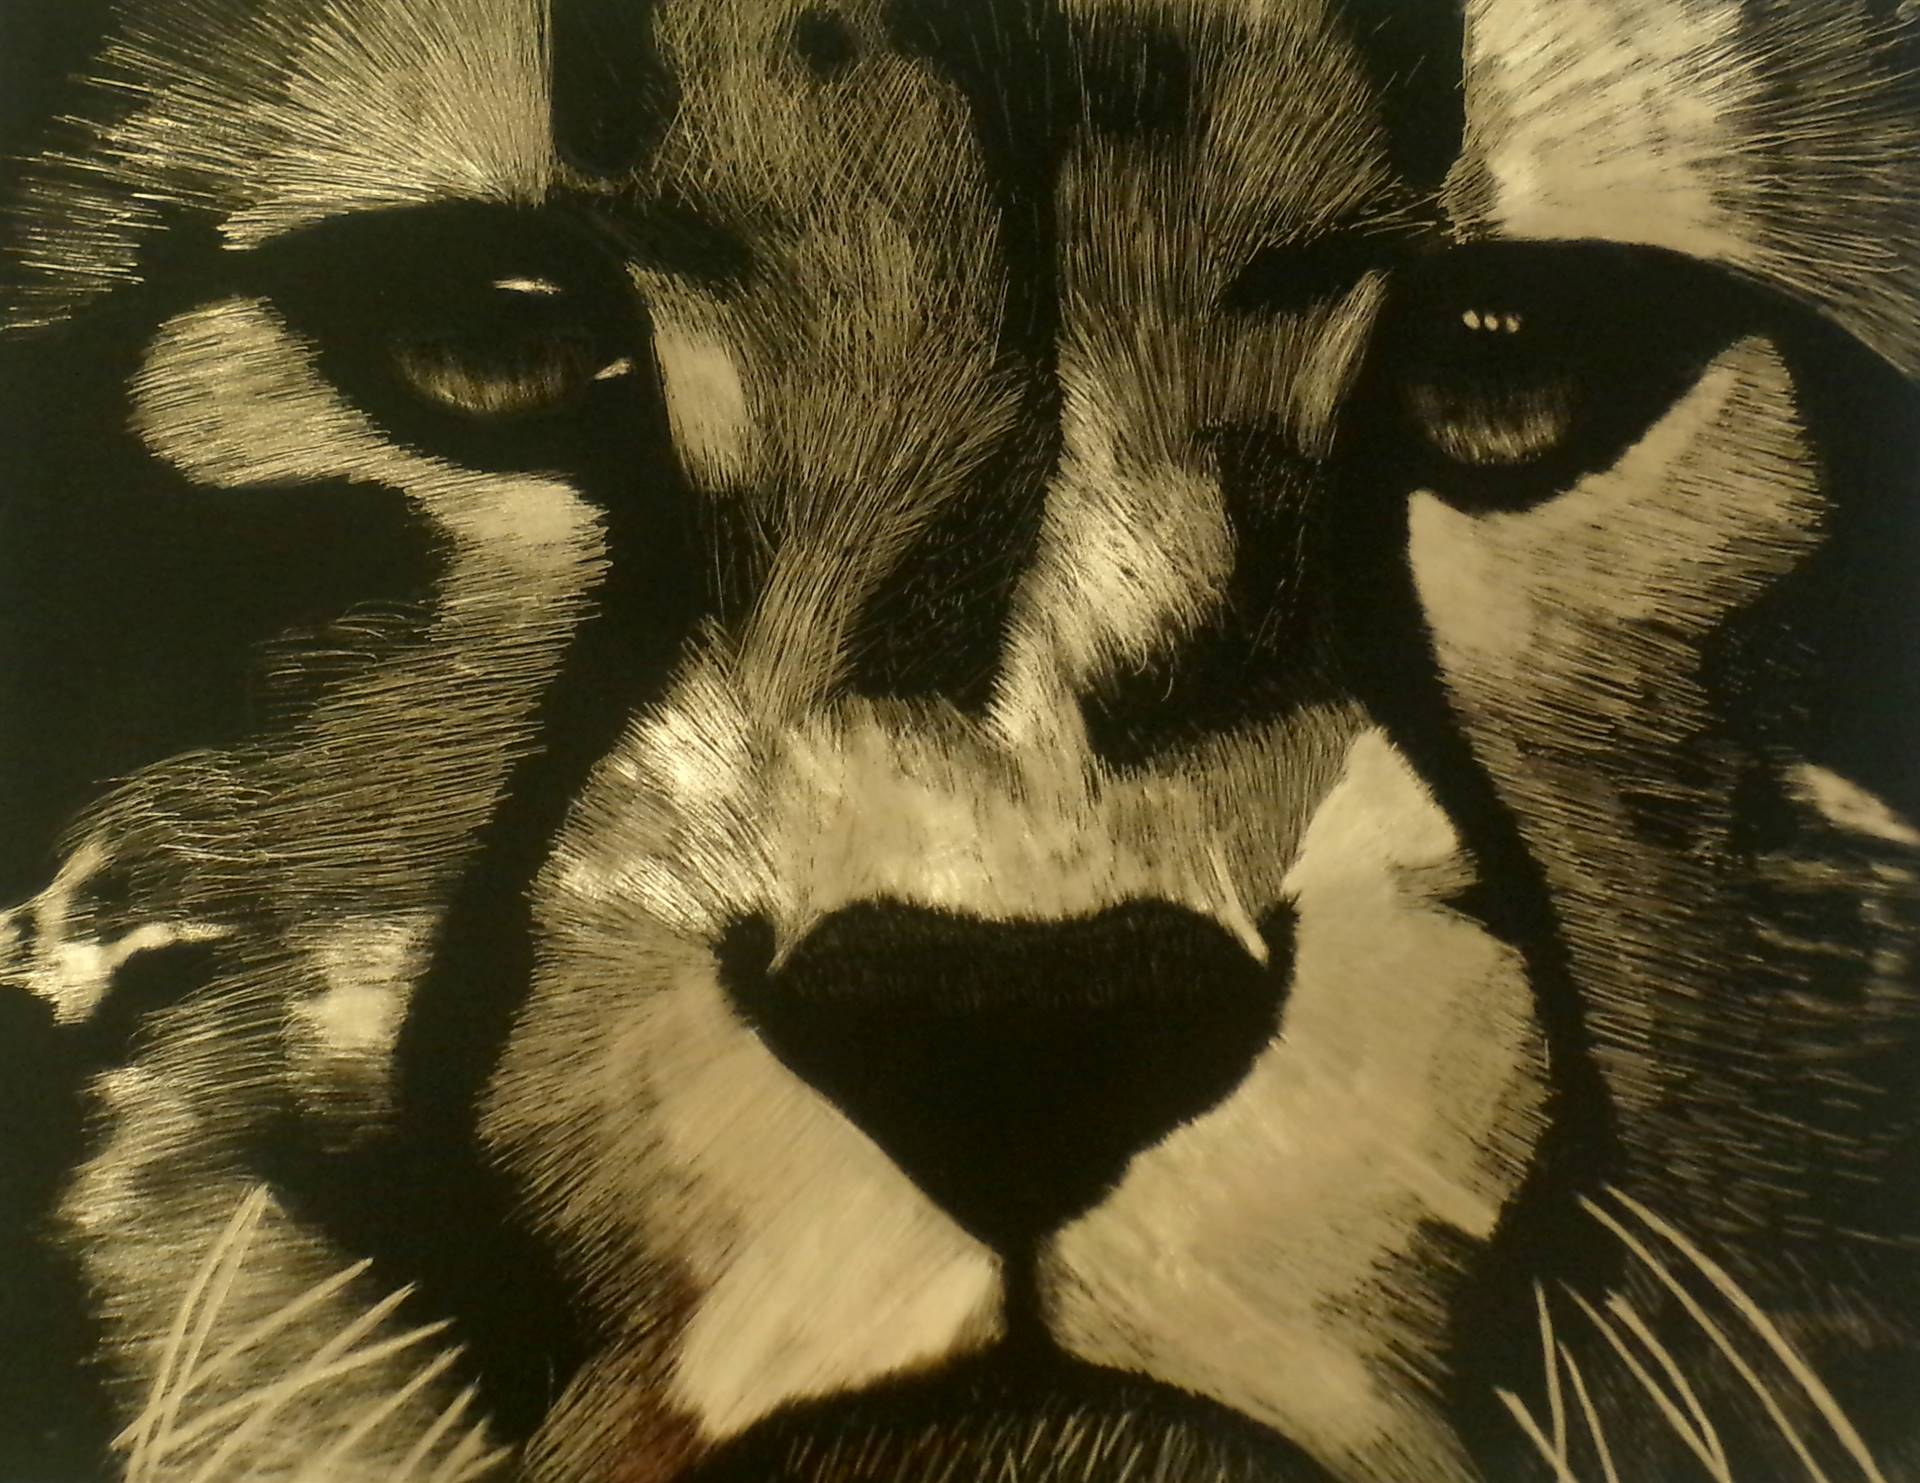 Scratchboard artwork of a close up of a cheetah face